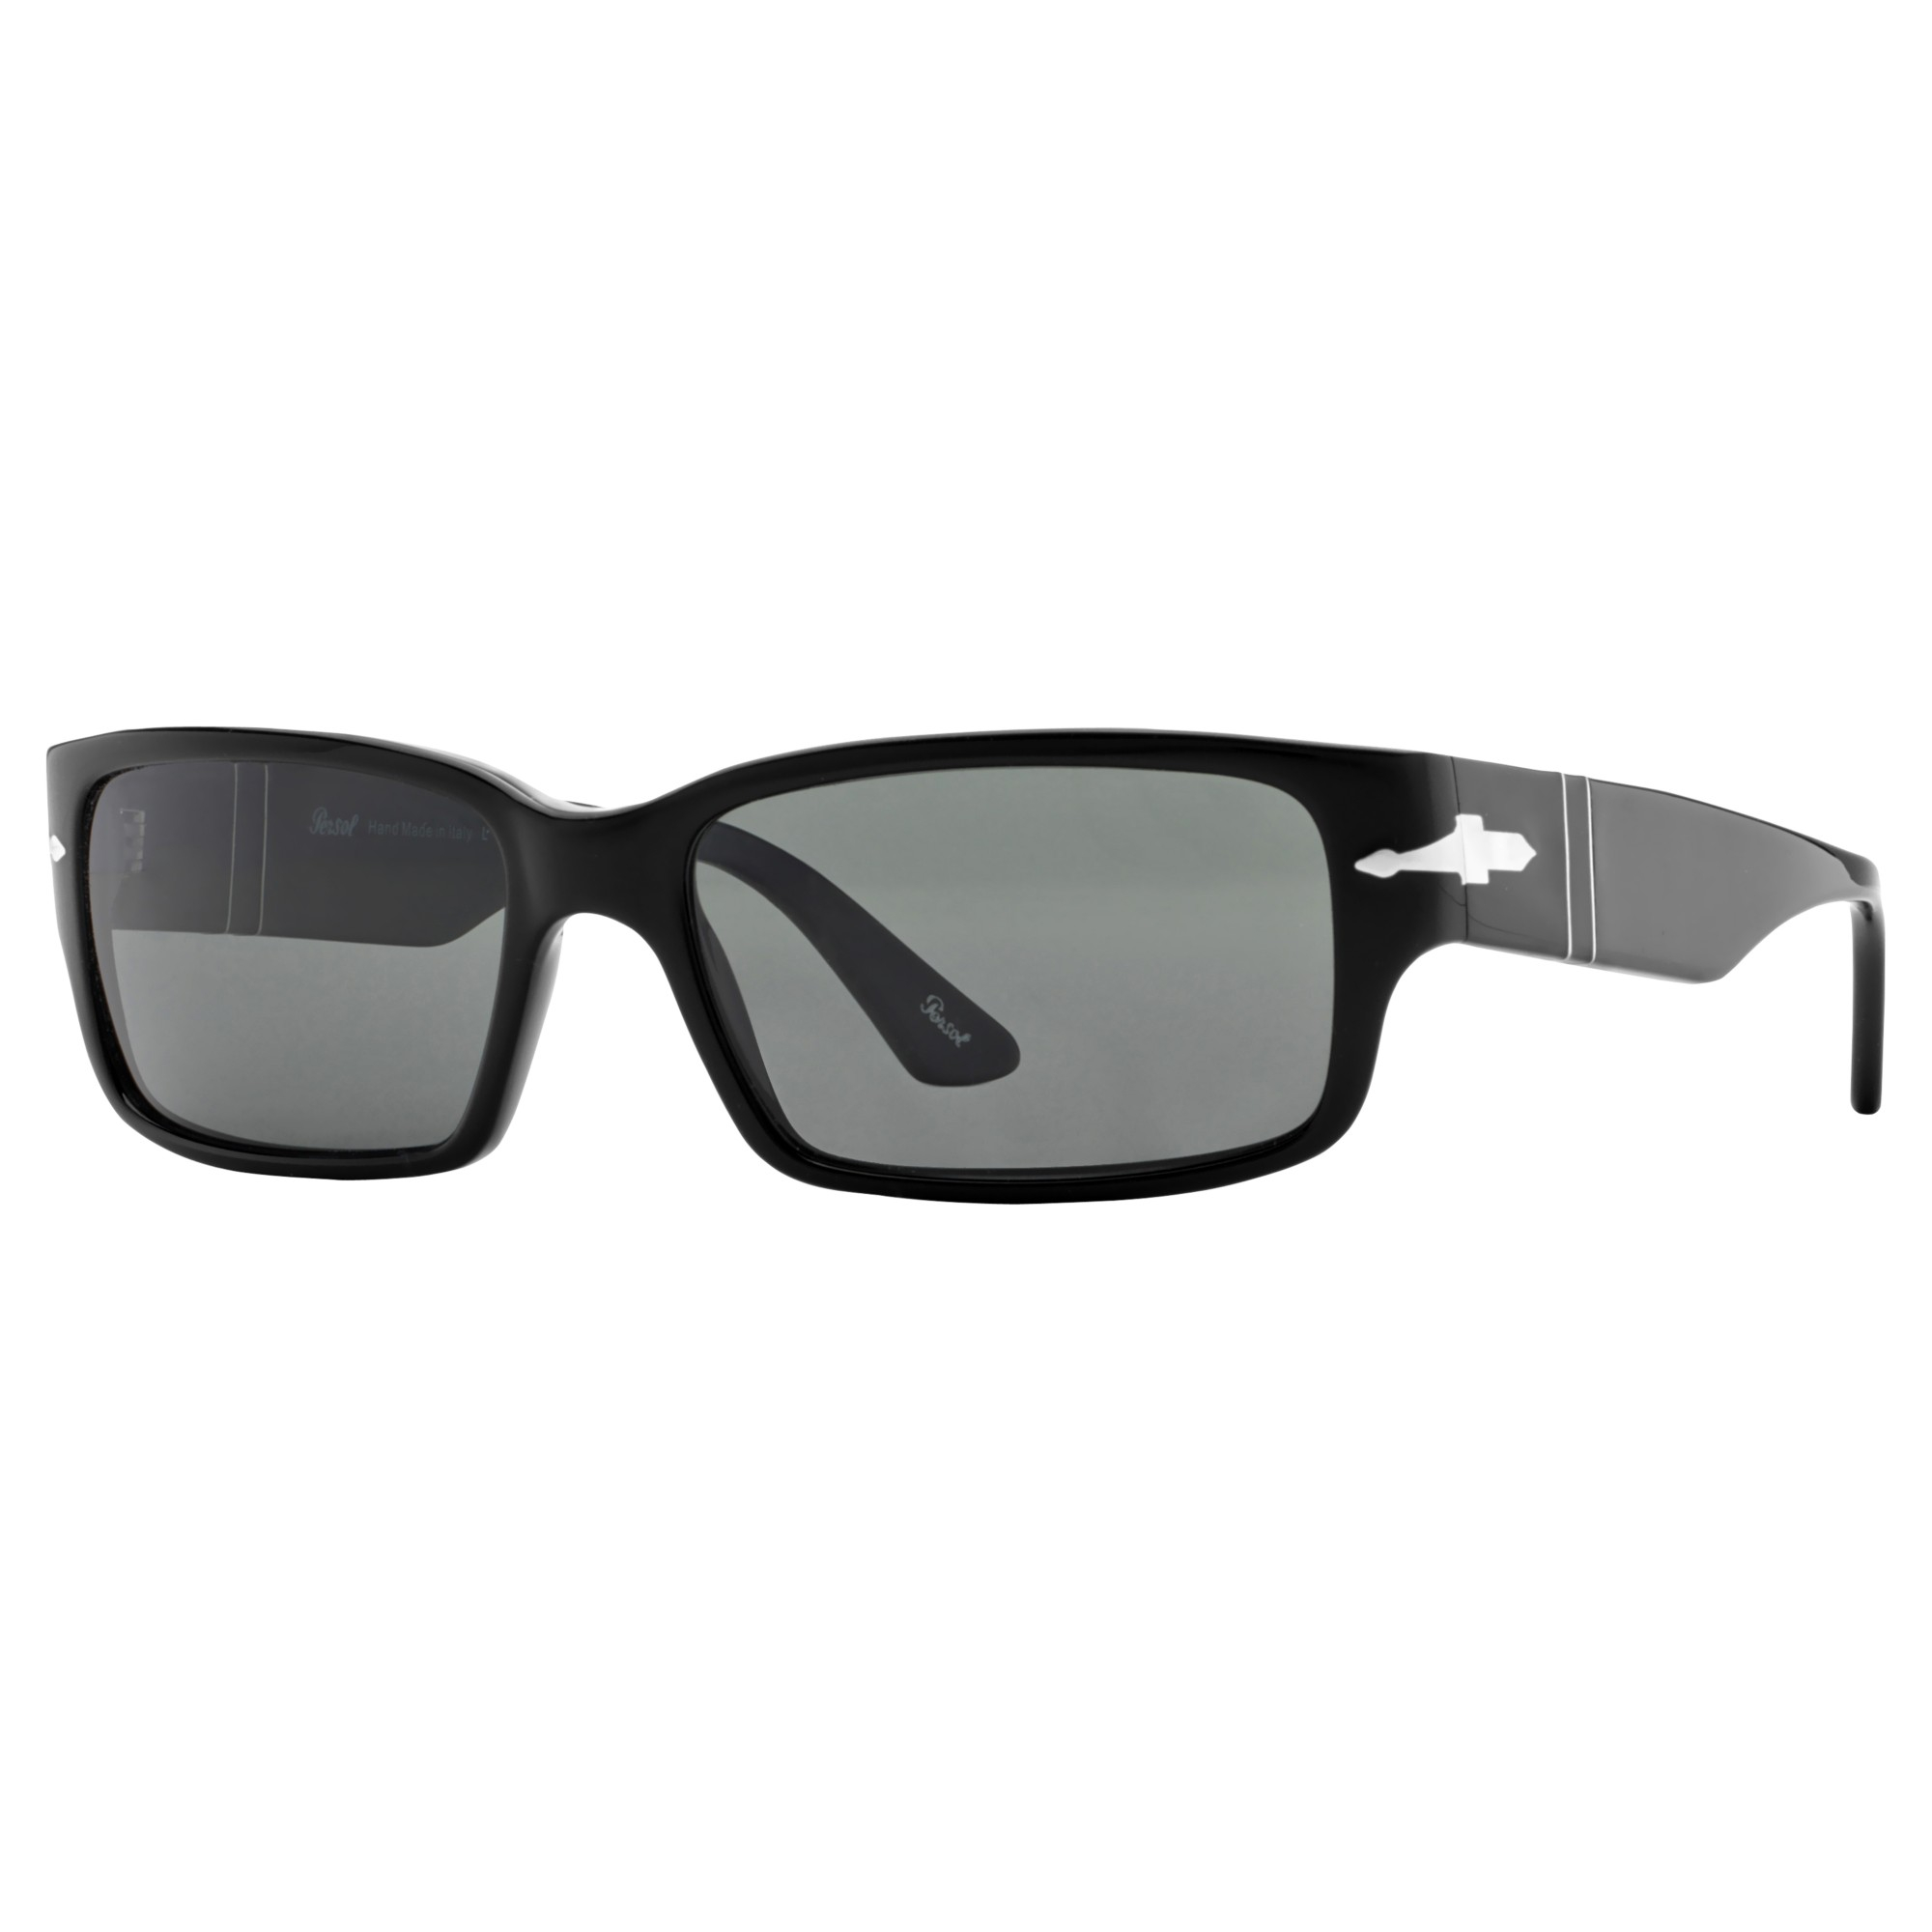 c0e10687d3fef Persol Po3087s Rectangular Framed Sunglasses in Black - Lyst